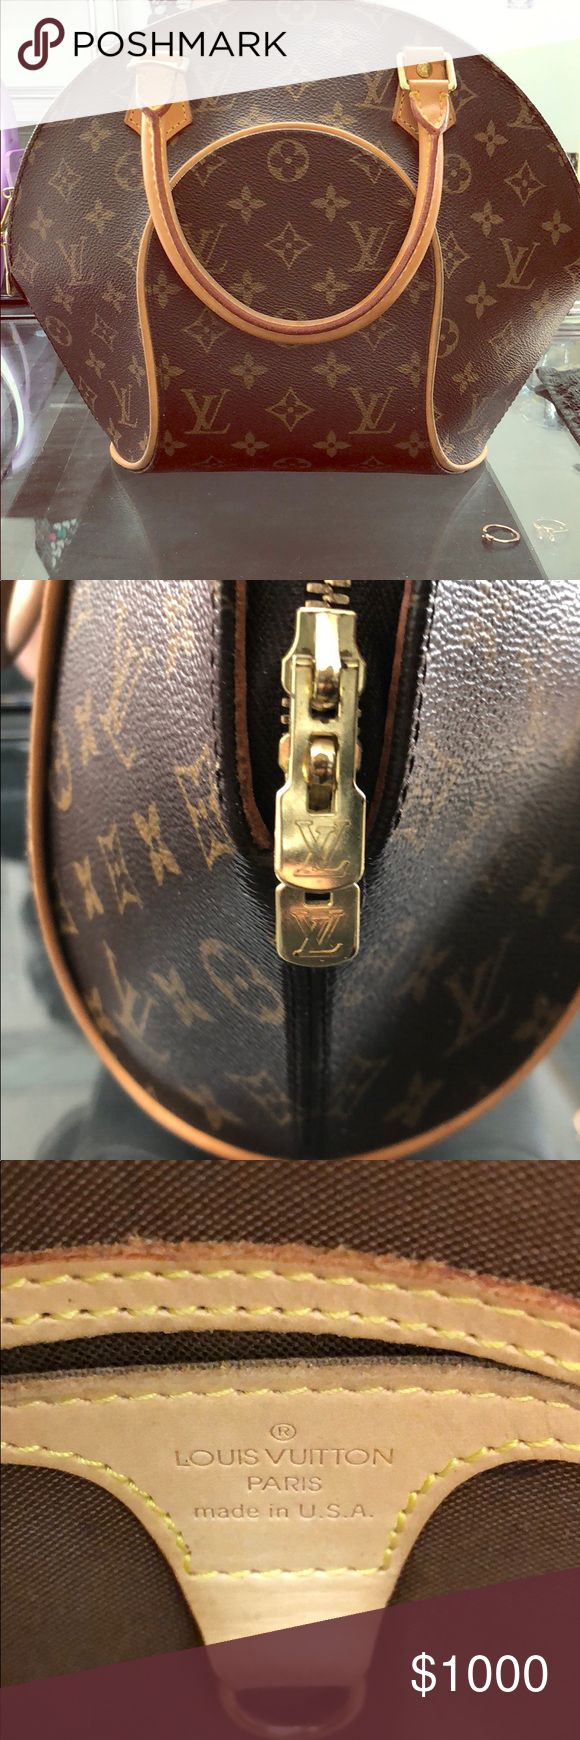 Louis Vuitton Monogram Elipse PM Bag (Excellent Condition) Louis Vuitton Monogram Elipse PM Bag ✨✨✨ This trendy Elipse handbag is the prefect spin on the bowling bag. With its iconic monogram canvas and sophistication gold - tone hardware, it's puts elegance into any situation! Louis Vuitton Bags Satchels